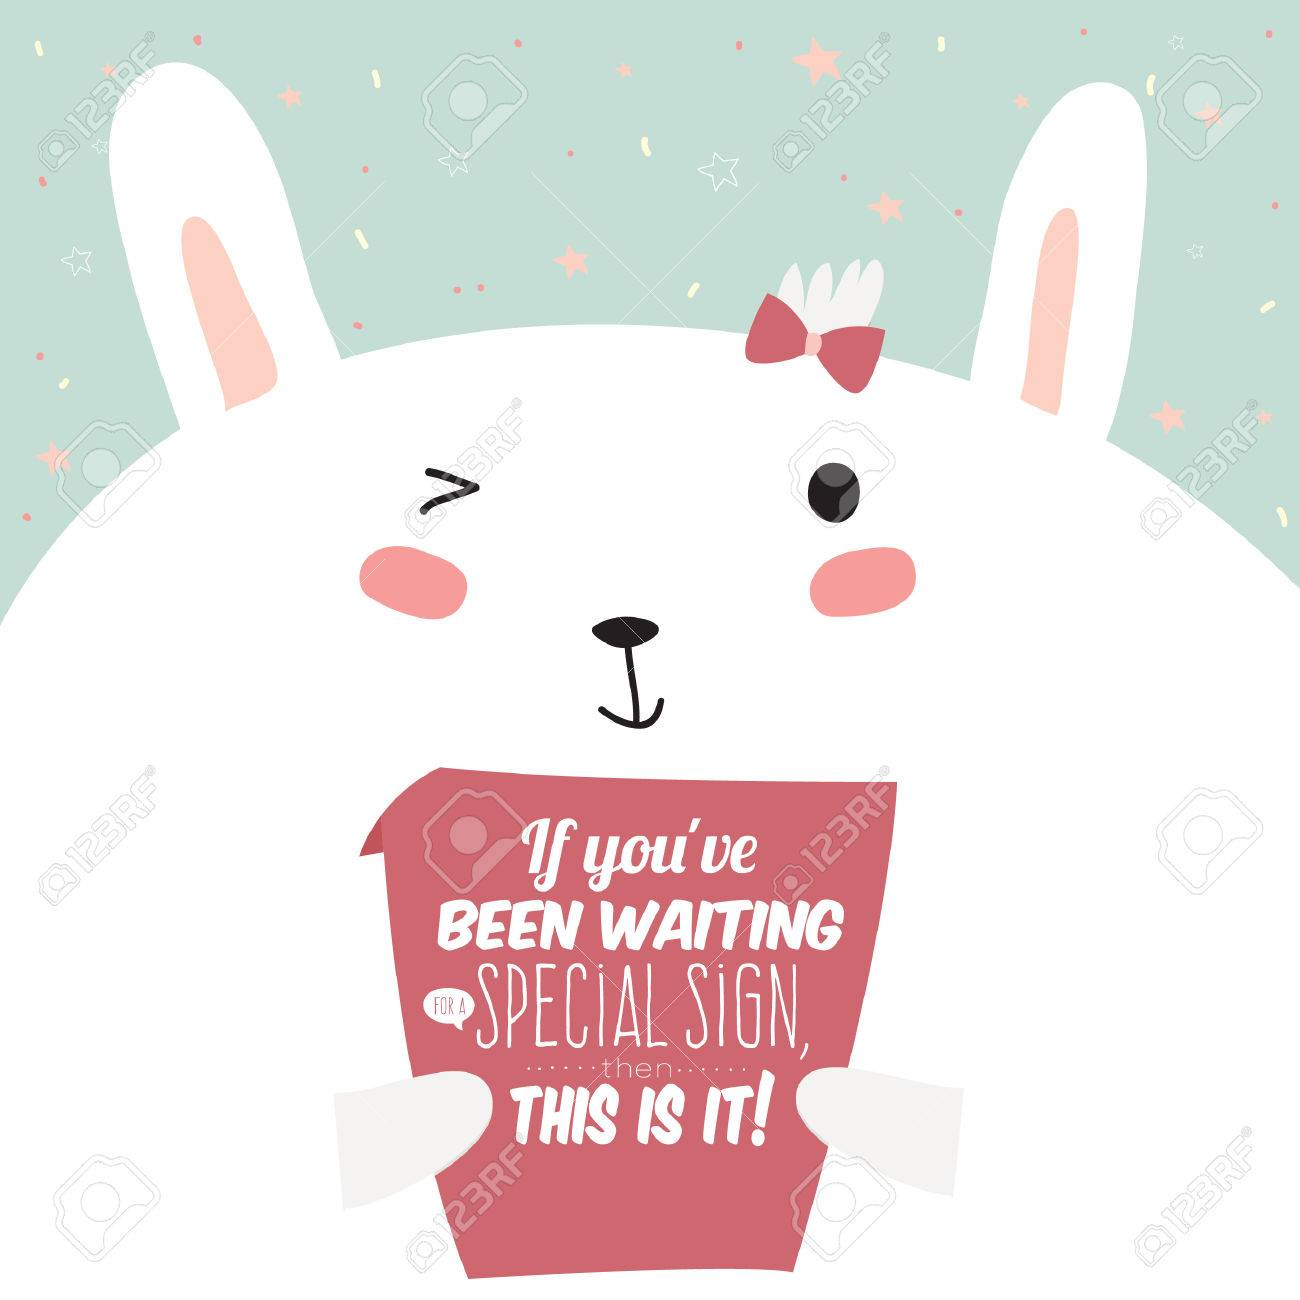 Greeting Card With Cute And Funny Bunny Illustration Inspirational Motivational